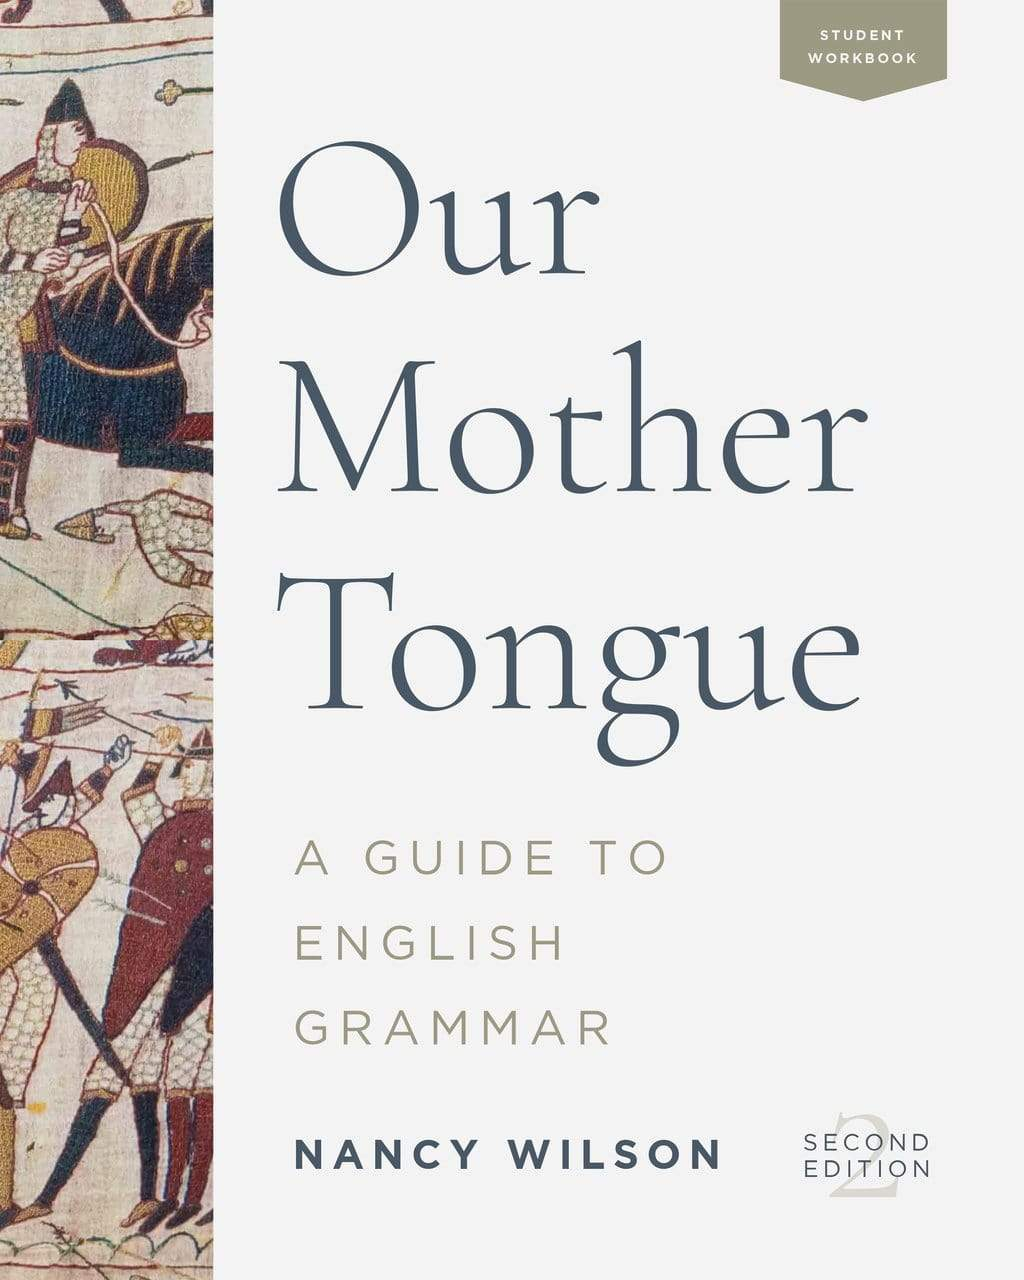 Our Mother Tongue: Student Workbook